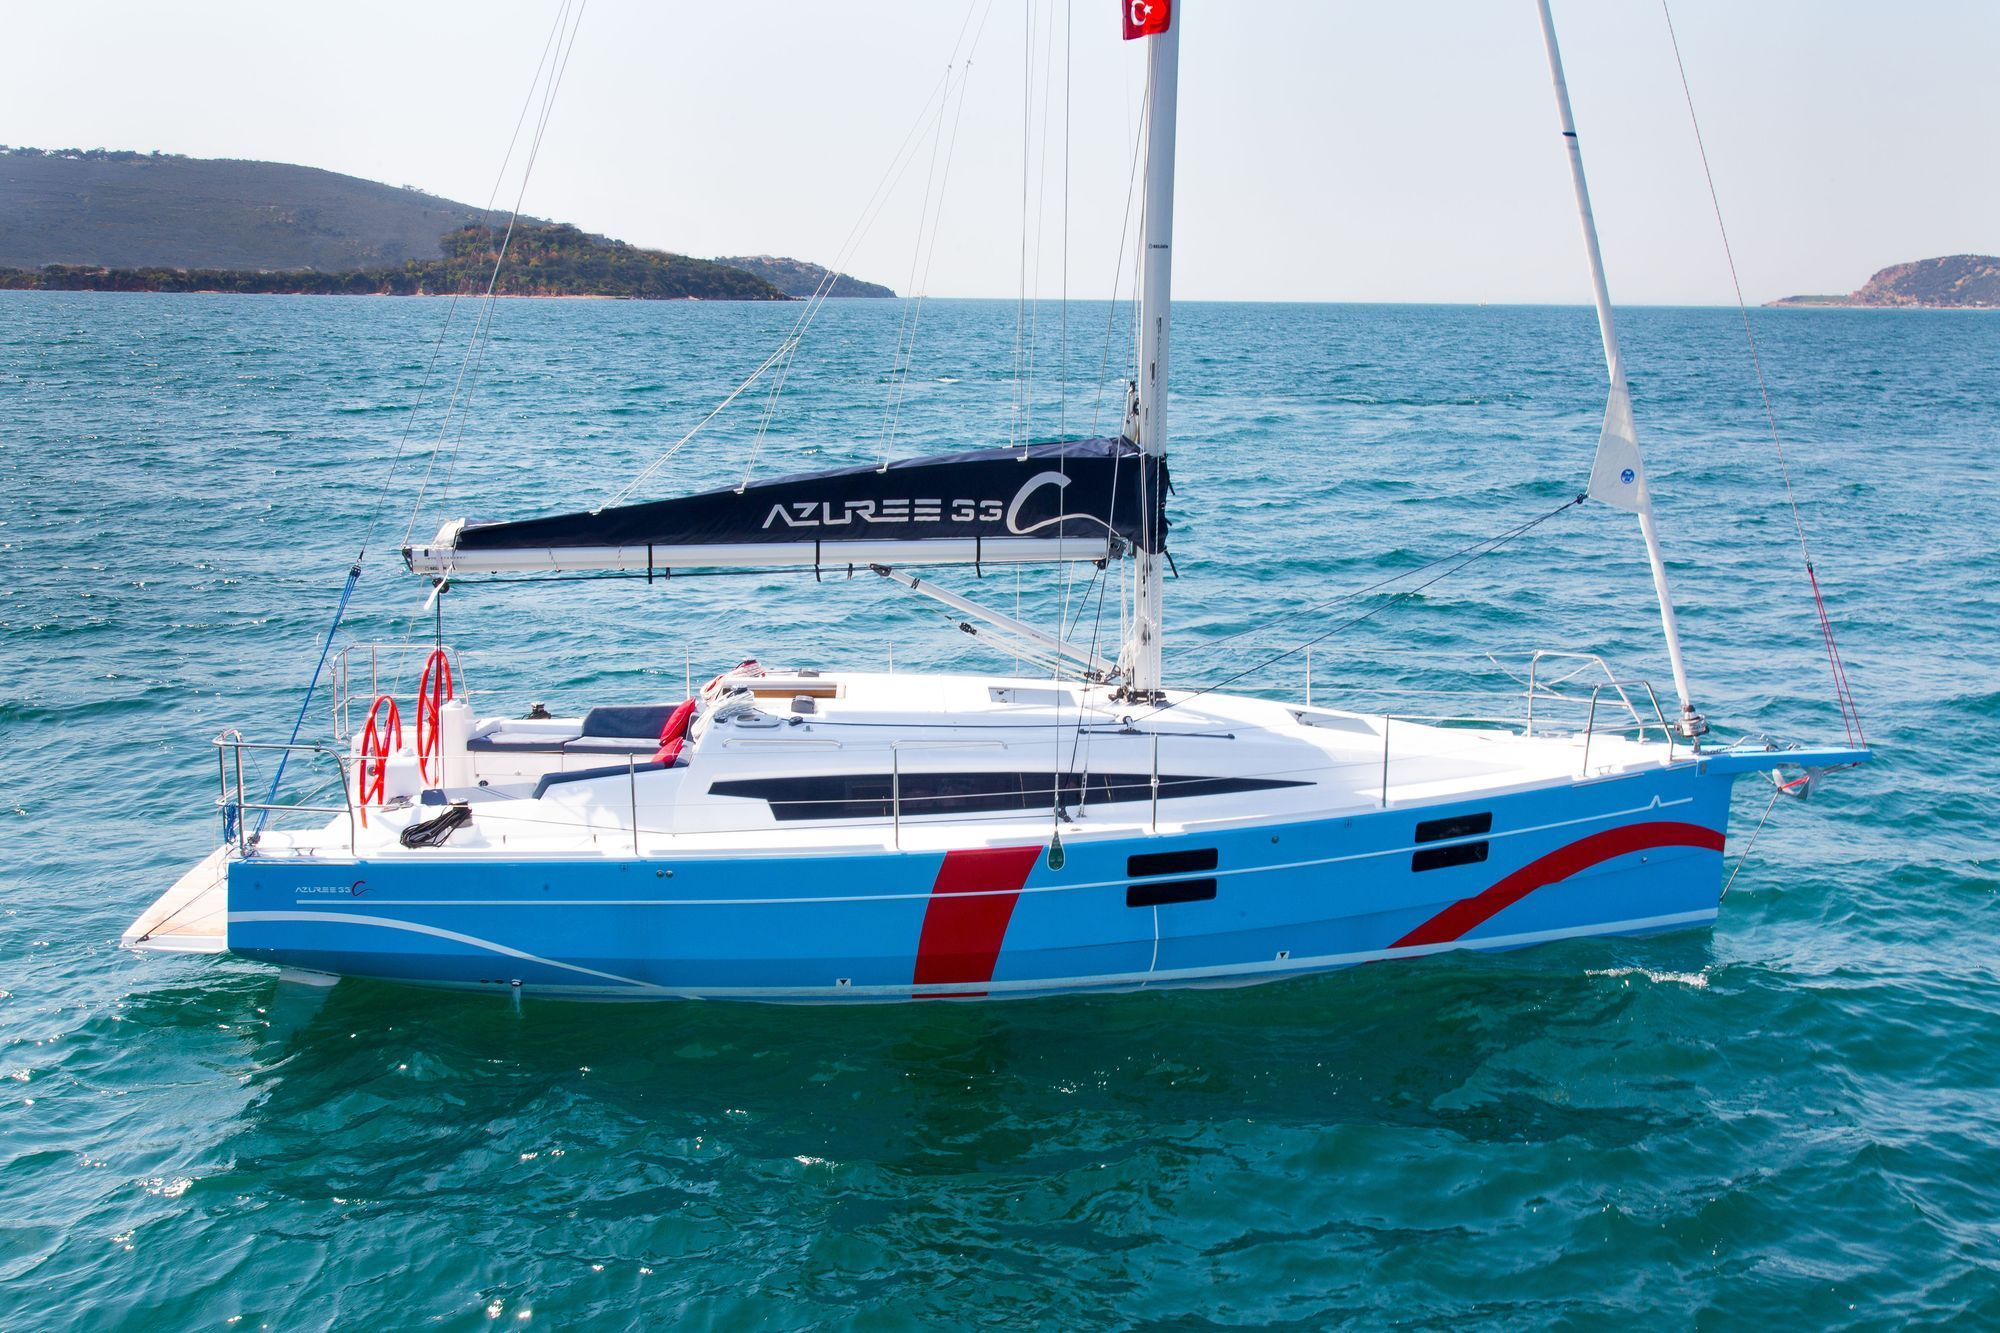 News and Reviews of Sailboats, Yachts and Cruisers | Cruising World